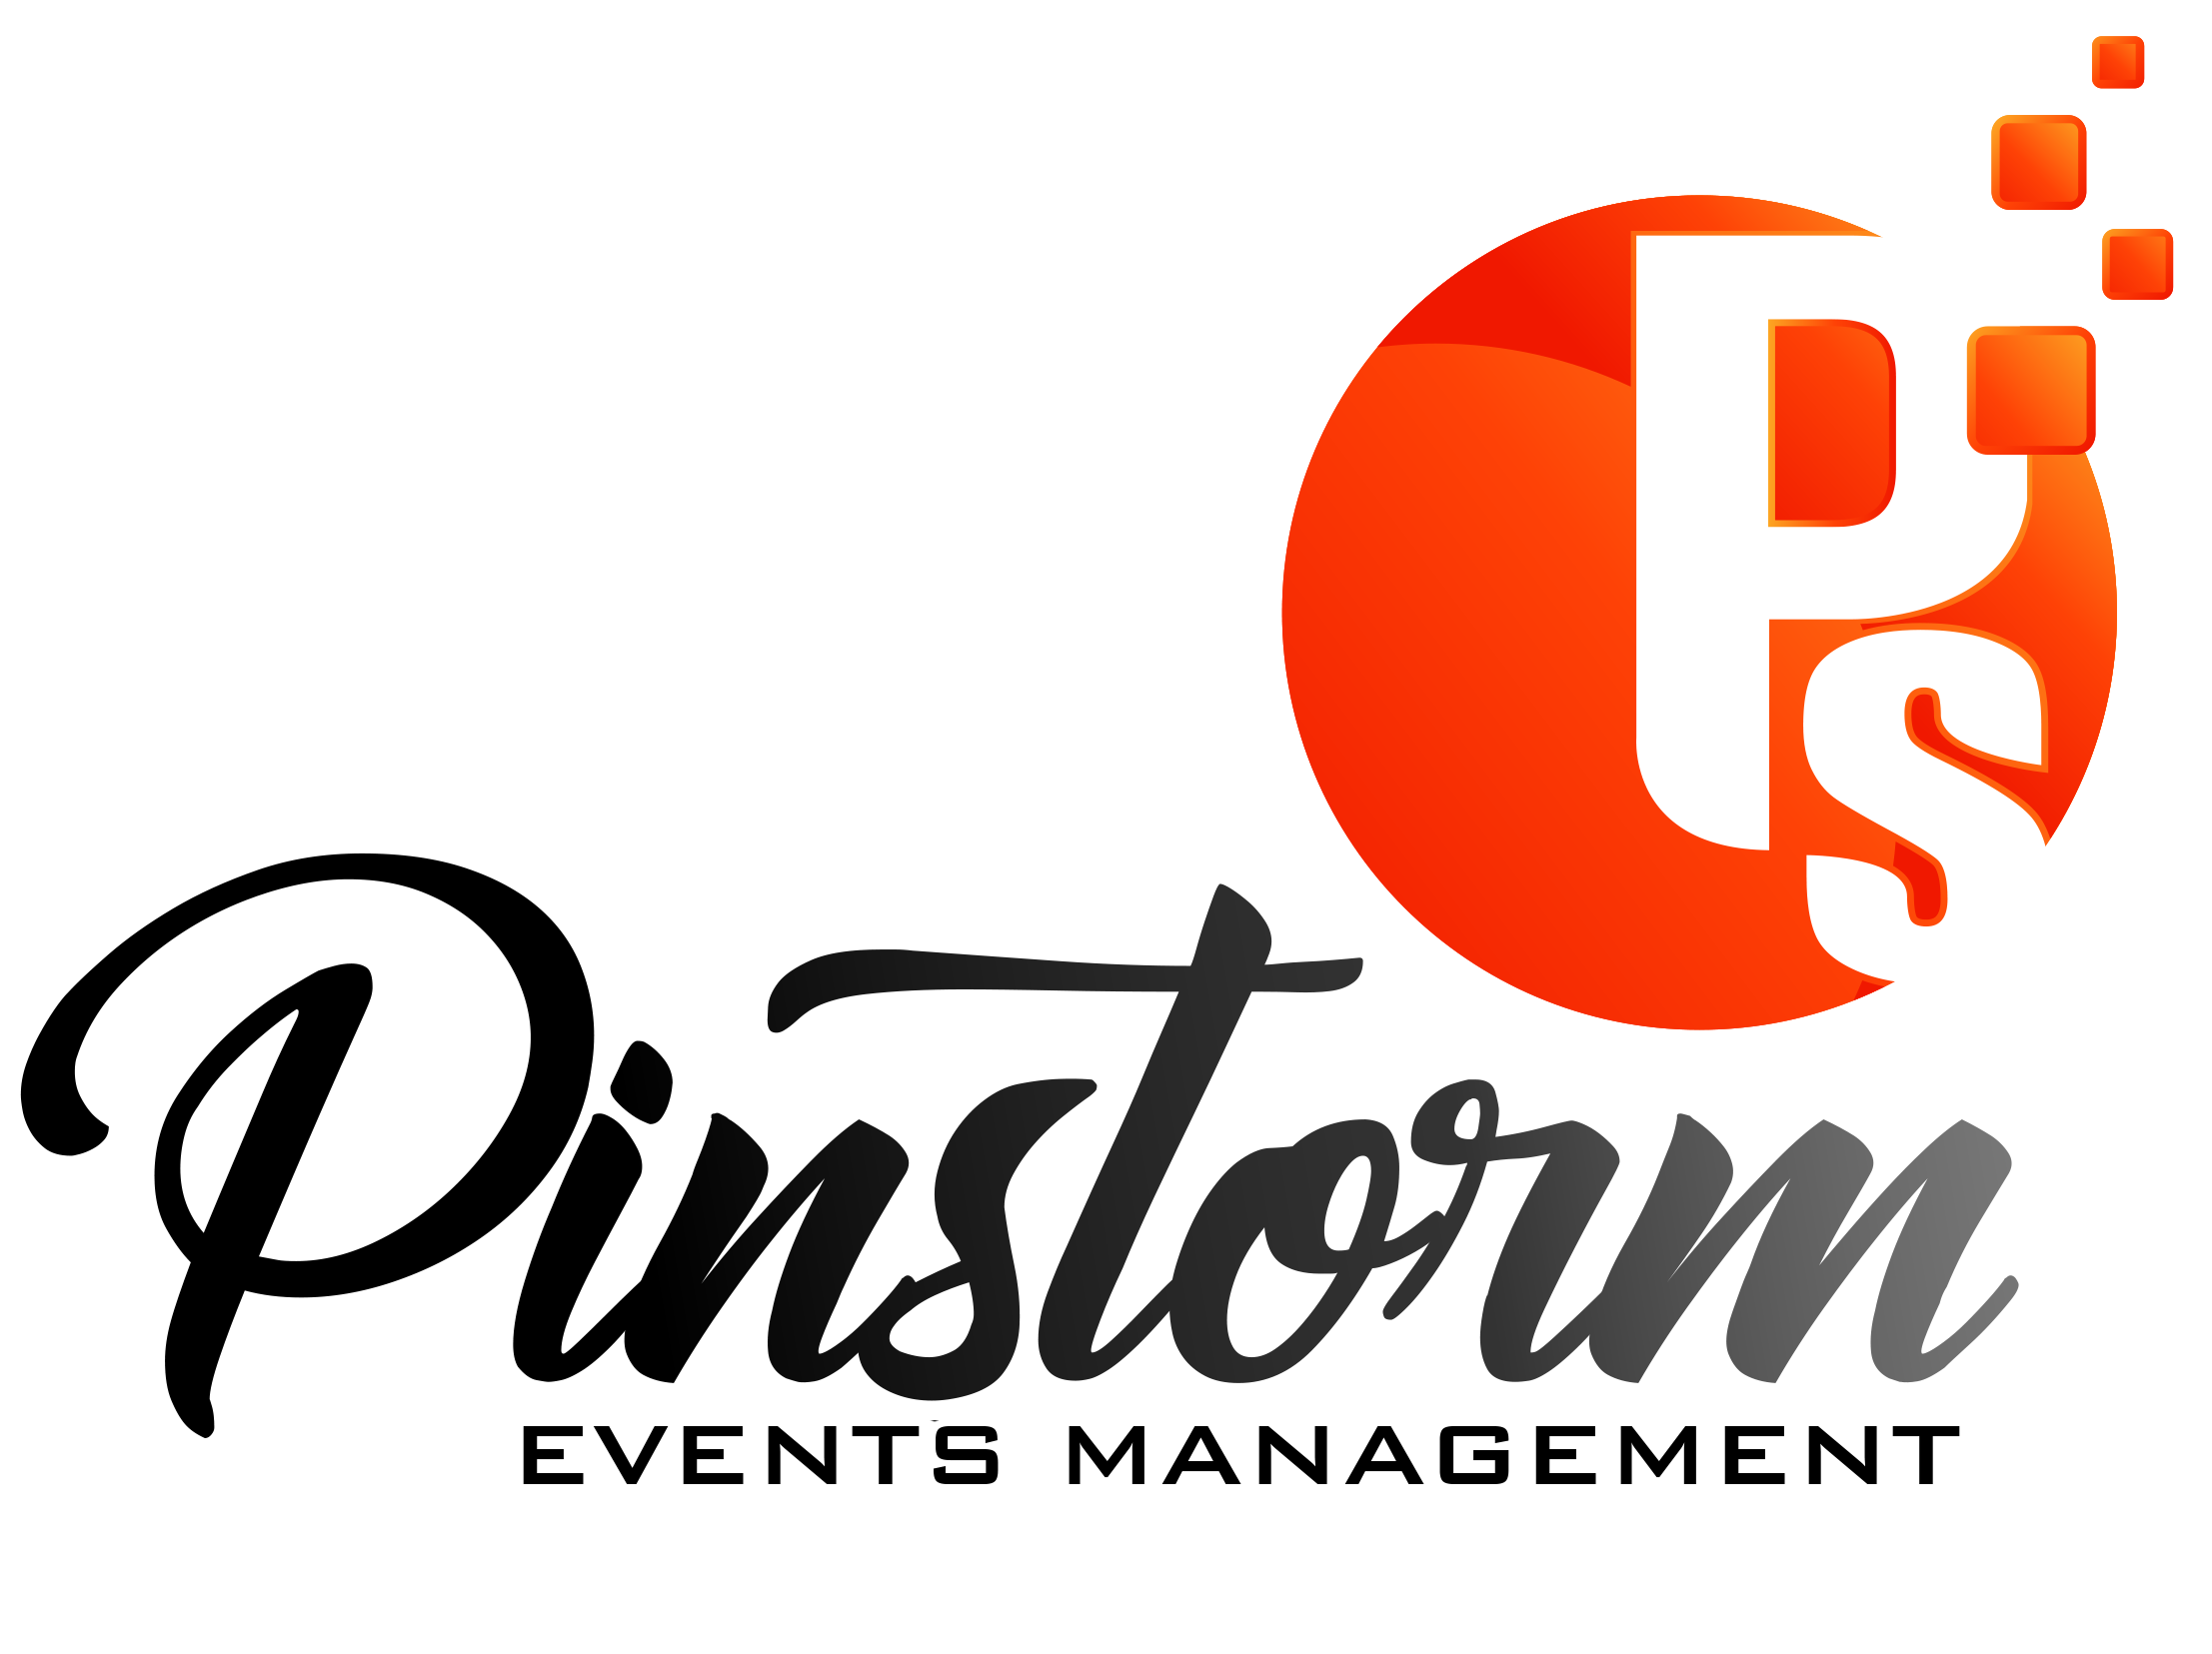 Pinstorm Events Management